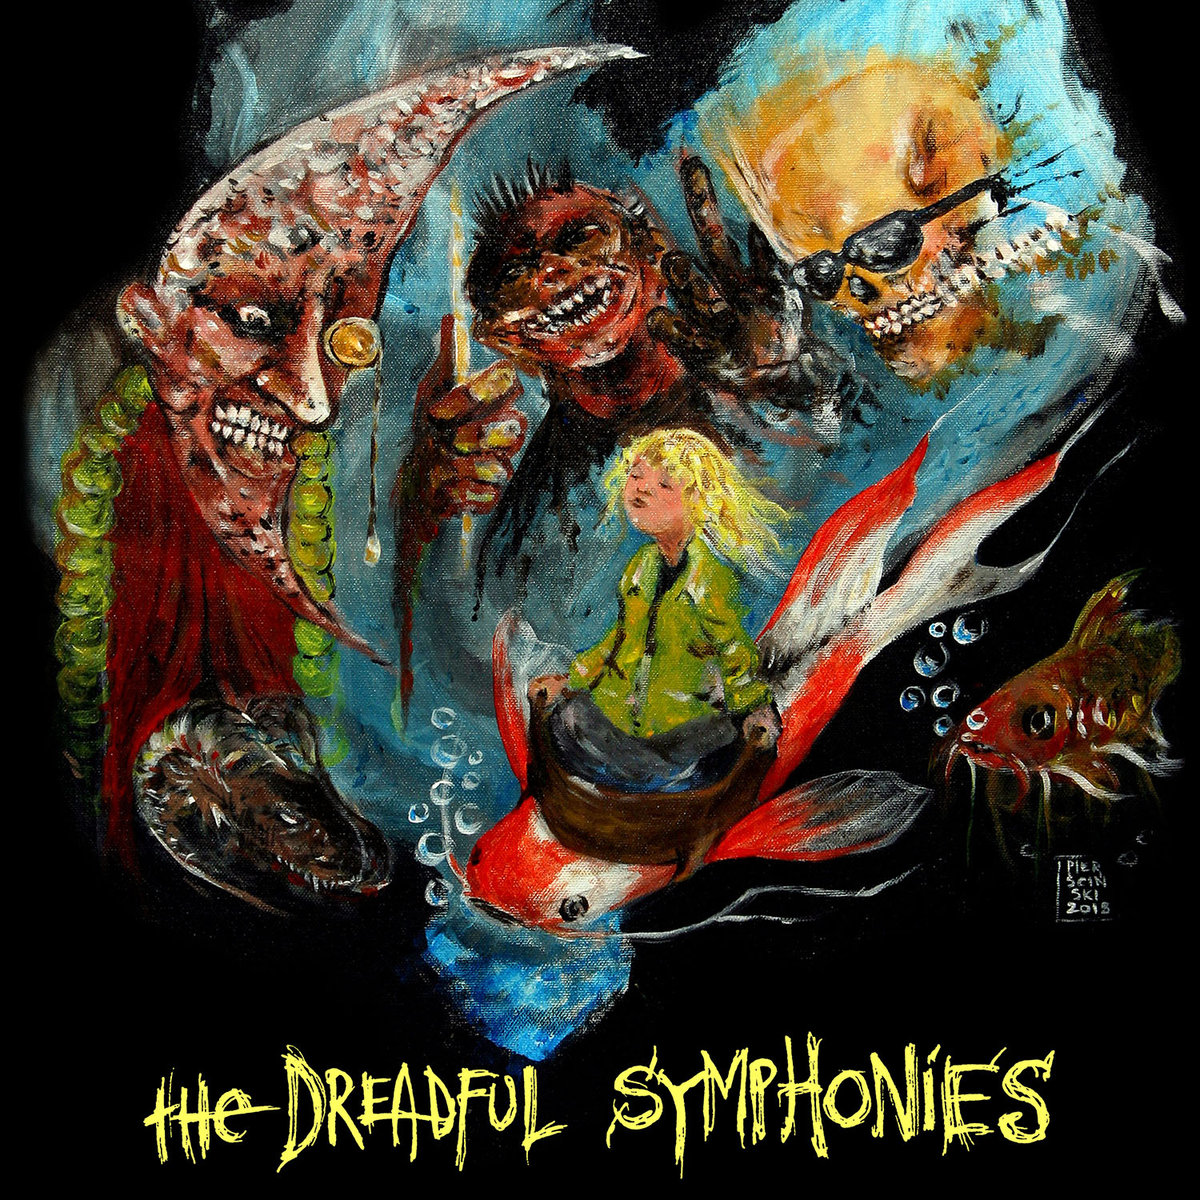 The Dreadful Symphonies